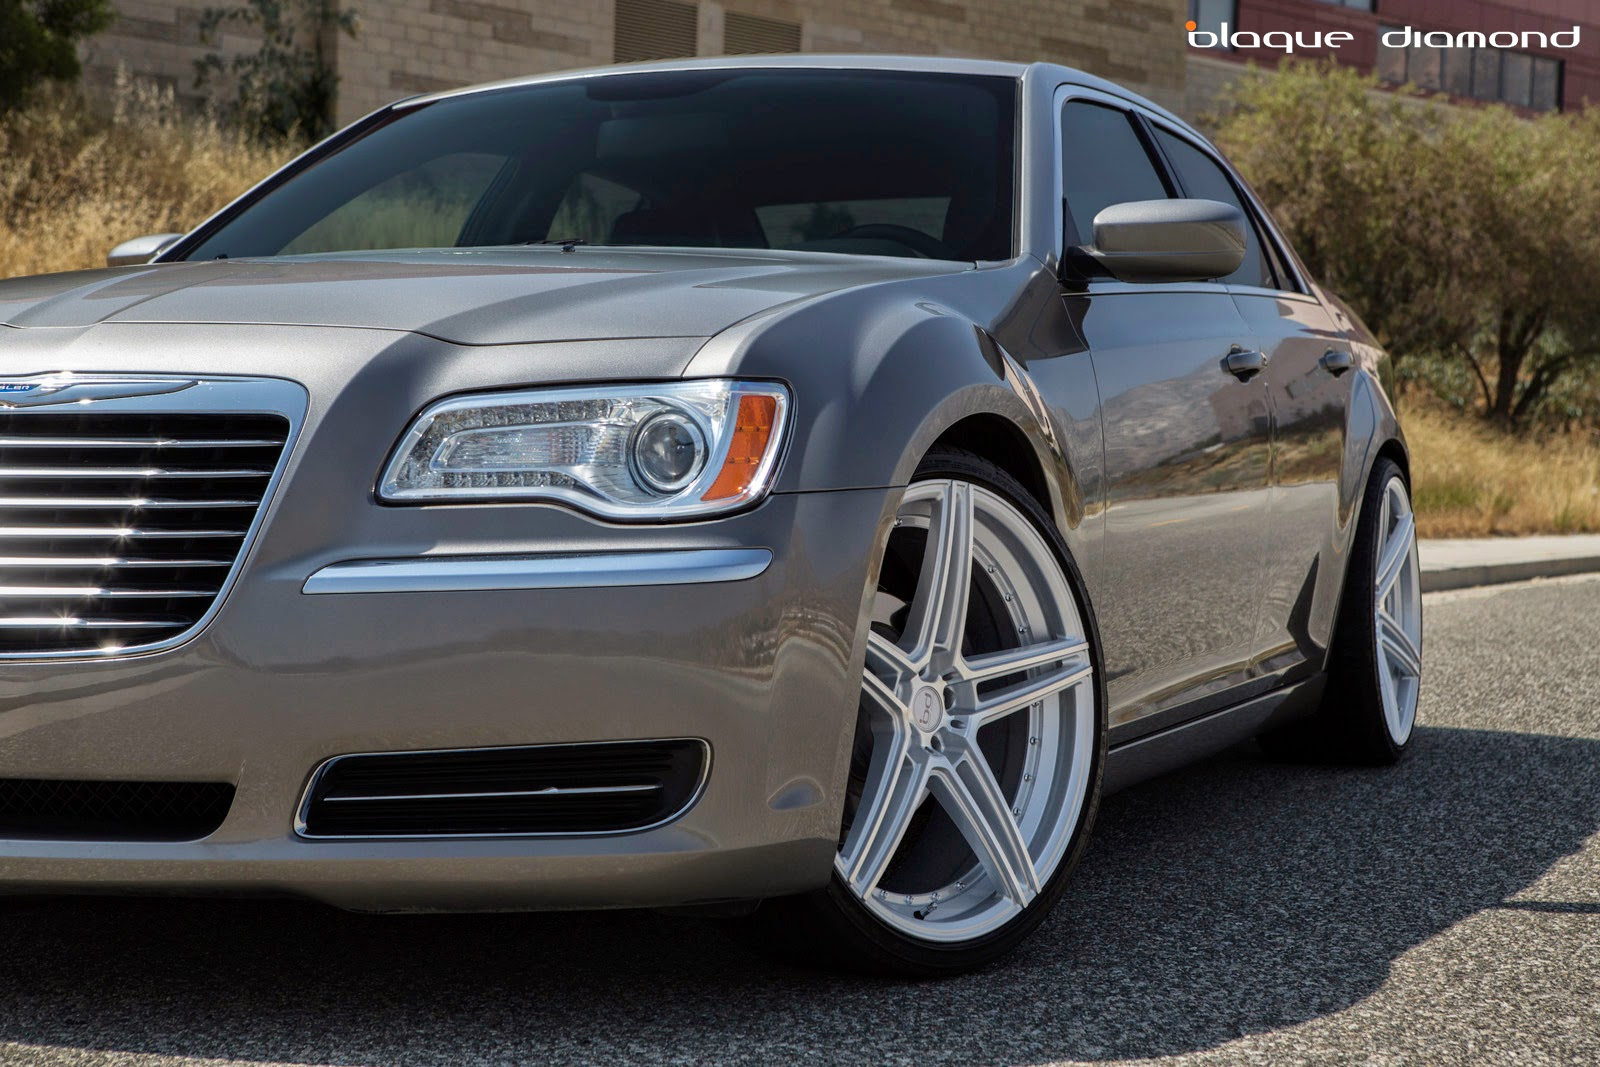 2012 Chrysler 300c With 22 Inch Bd 6 S In Silver Polish